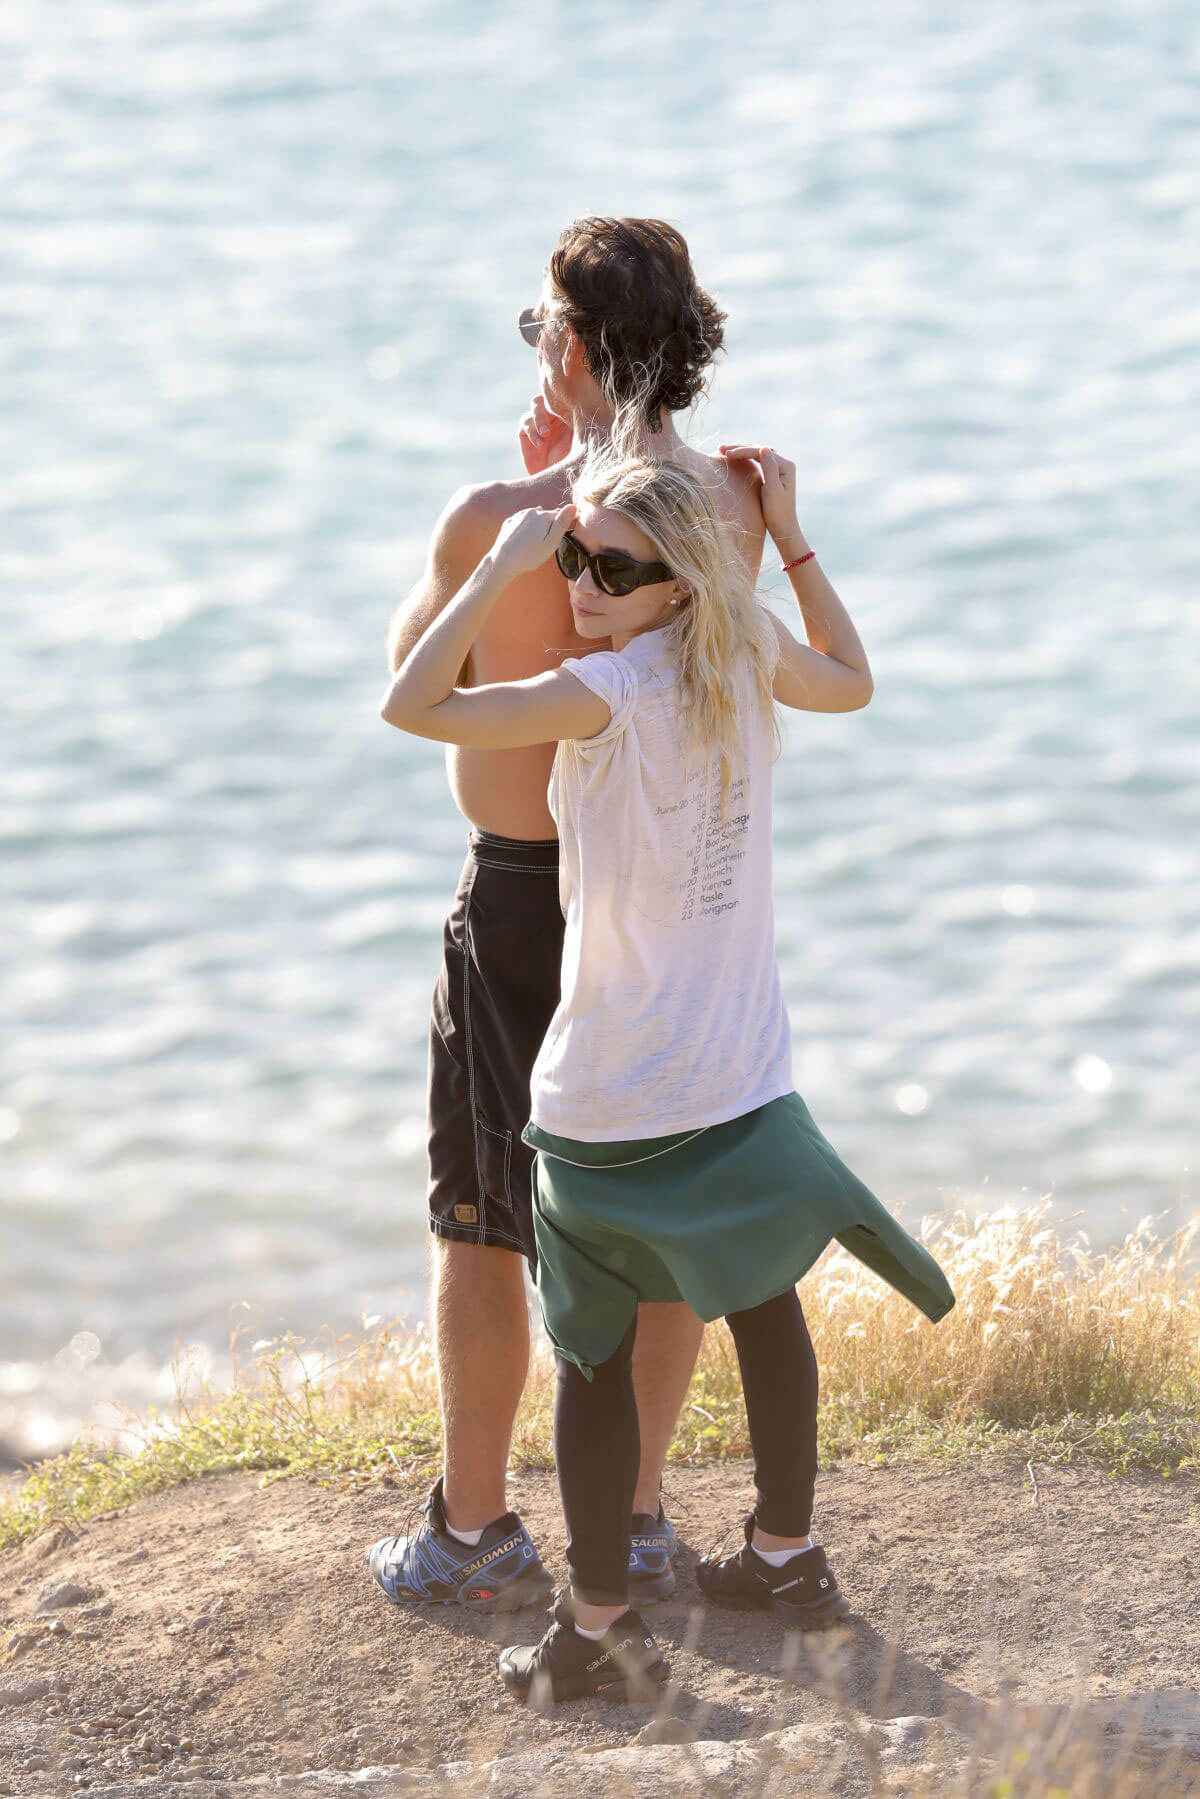 Ashley Olsen and Boyfriend on the Beach in St. Barth Stills Images